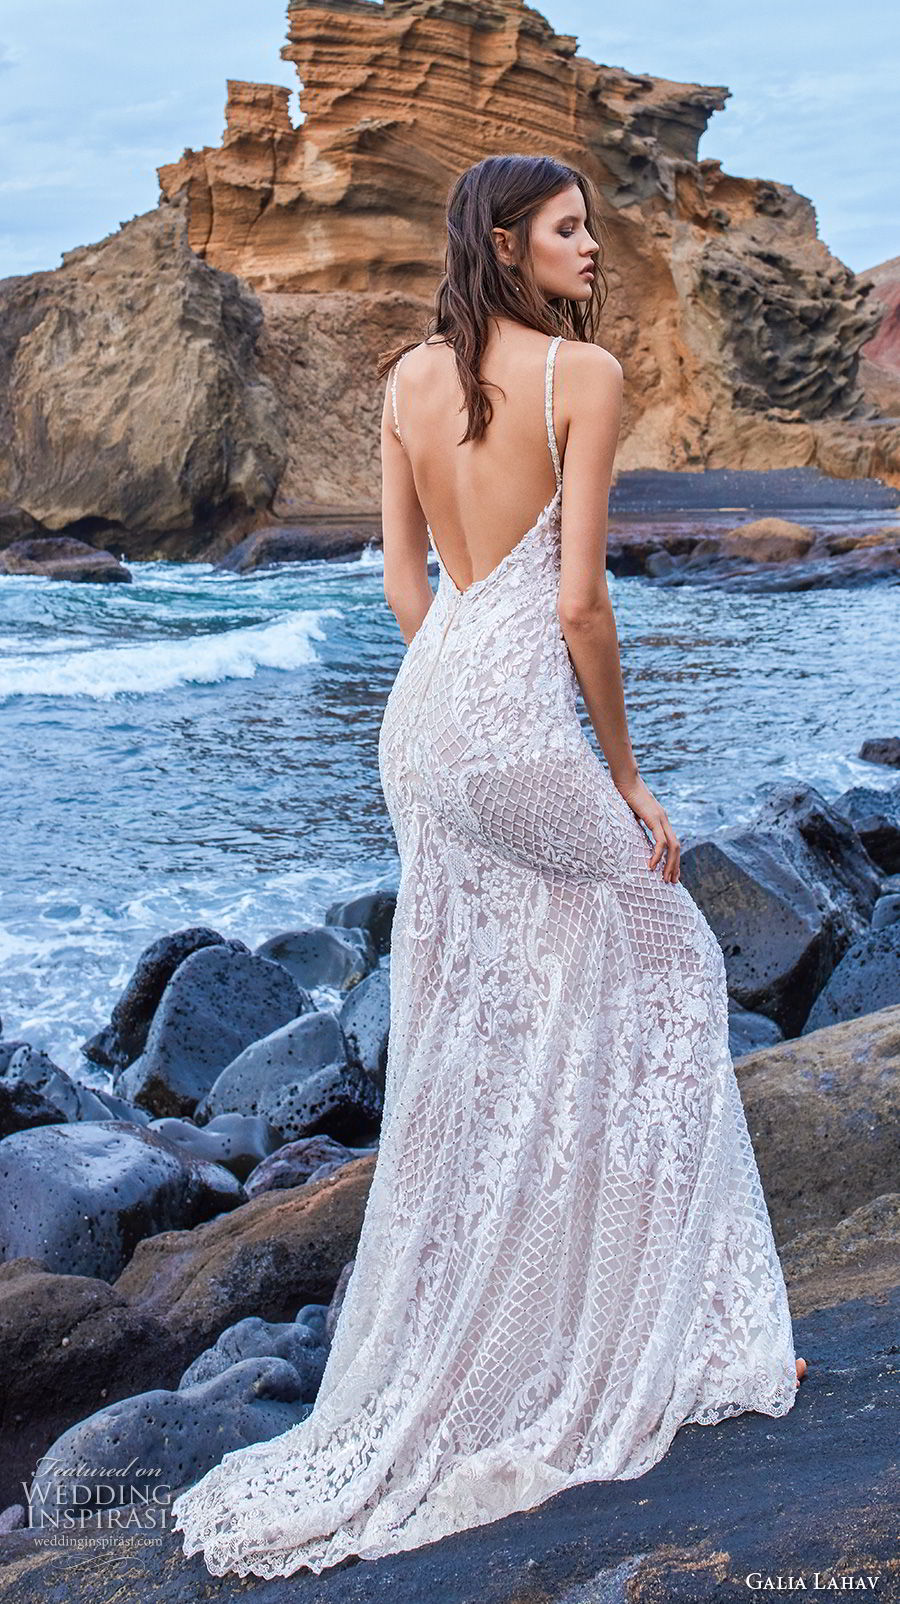 galia lahav gala 2018 bridal sleeveless with strap deep v neck full embellishment elegant fit and flare sheath wedding dress open low back sweep train (13) bv